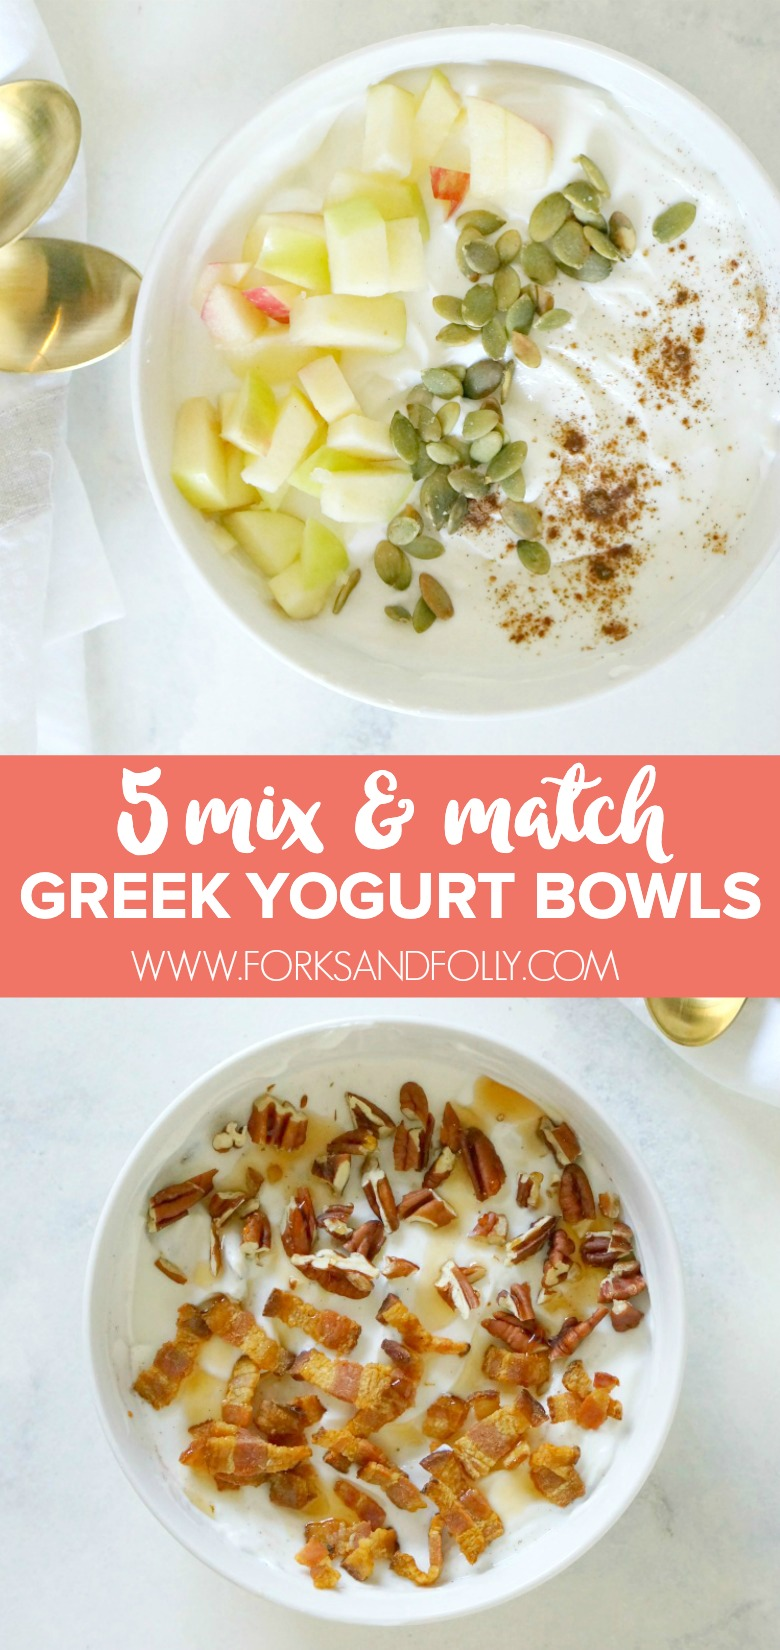 These 5 Wake-Up Worthy Greek Yogurt Breakfast Bowls make getting up early in the morning totally worth it. I think my fave might be the Maple Bacon & Pecan Greek Yogurt Breakfast Bowls. What about you